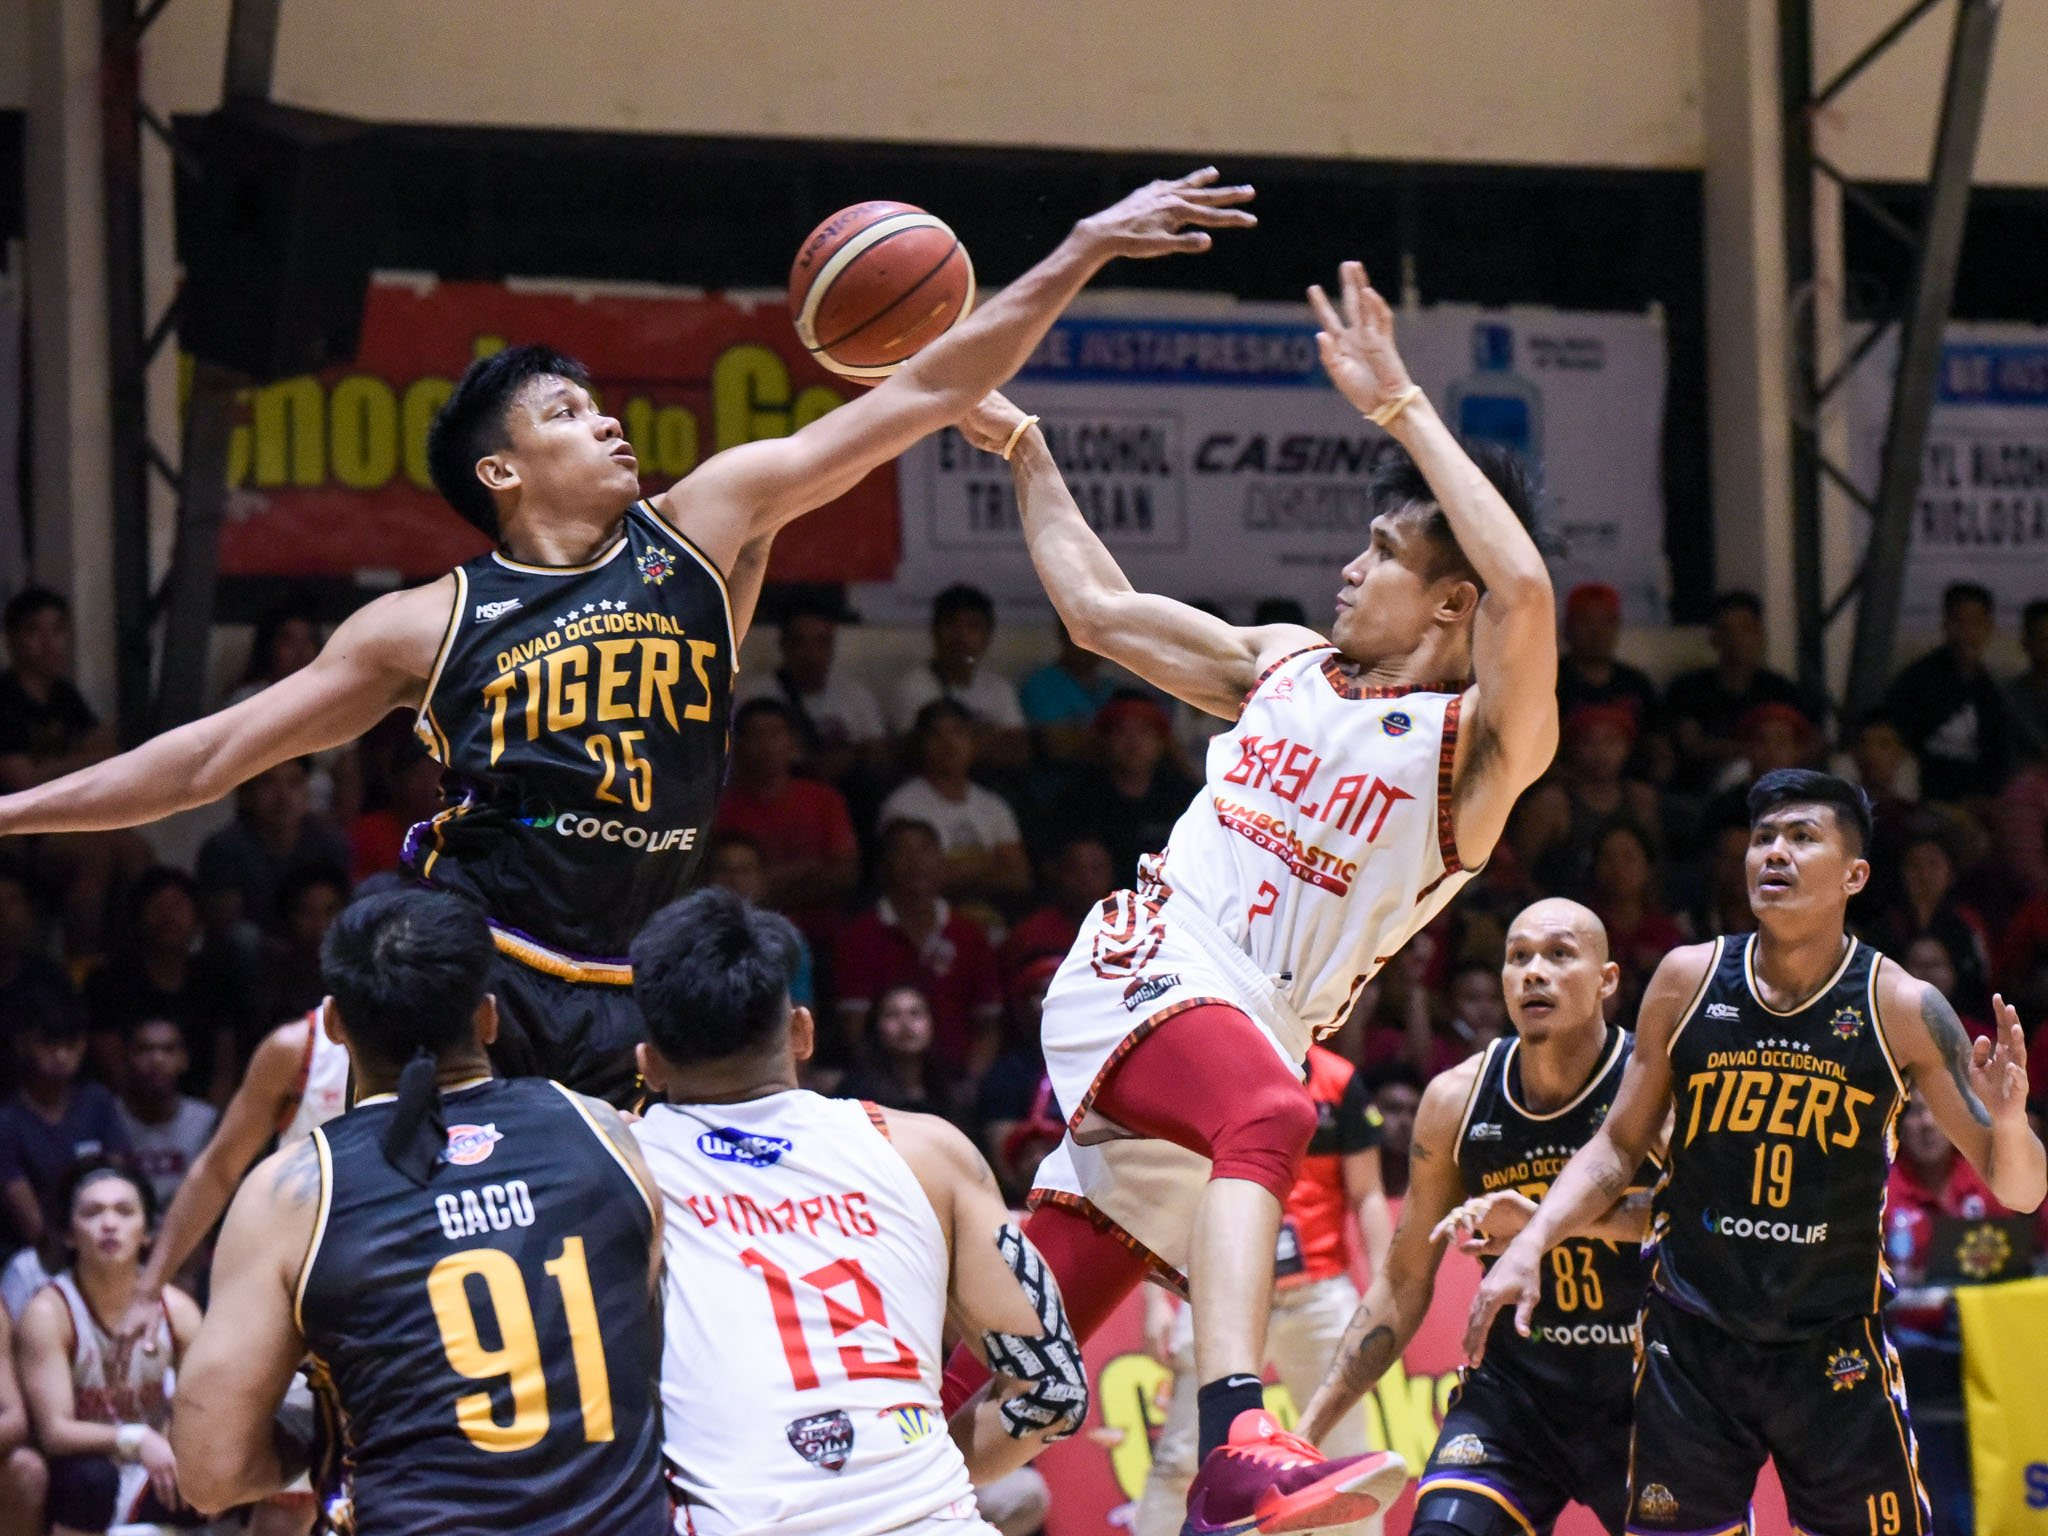 Tiebreaker Times Hesed Gabo goes from zero to hero for Basilan Steel Basketball MPBL News  Leo Gabo Jerson Cabiltes Basilan Steel 2019-20 MPBL Lakan Cup